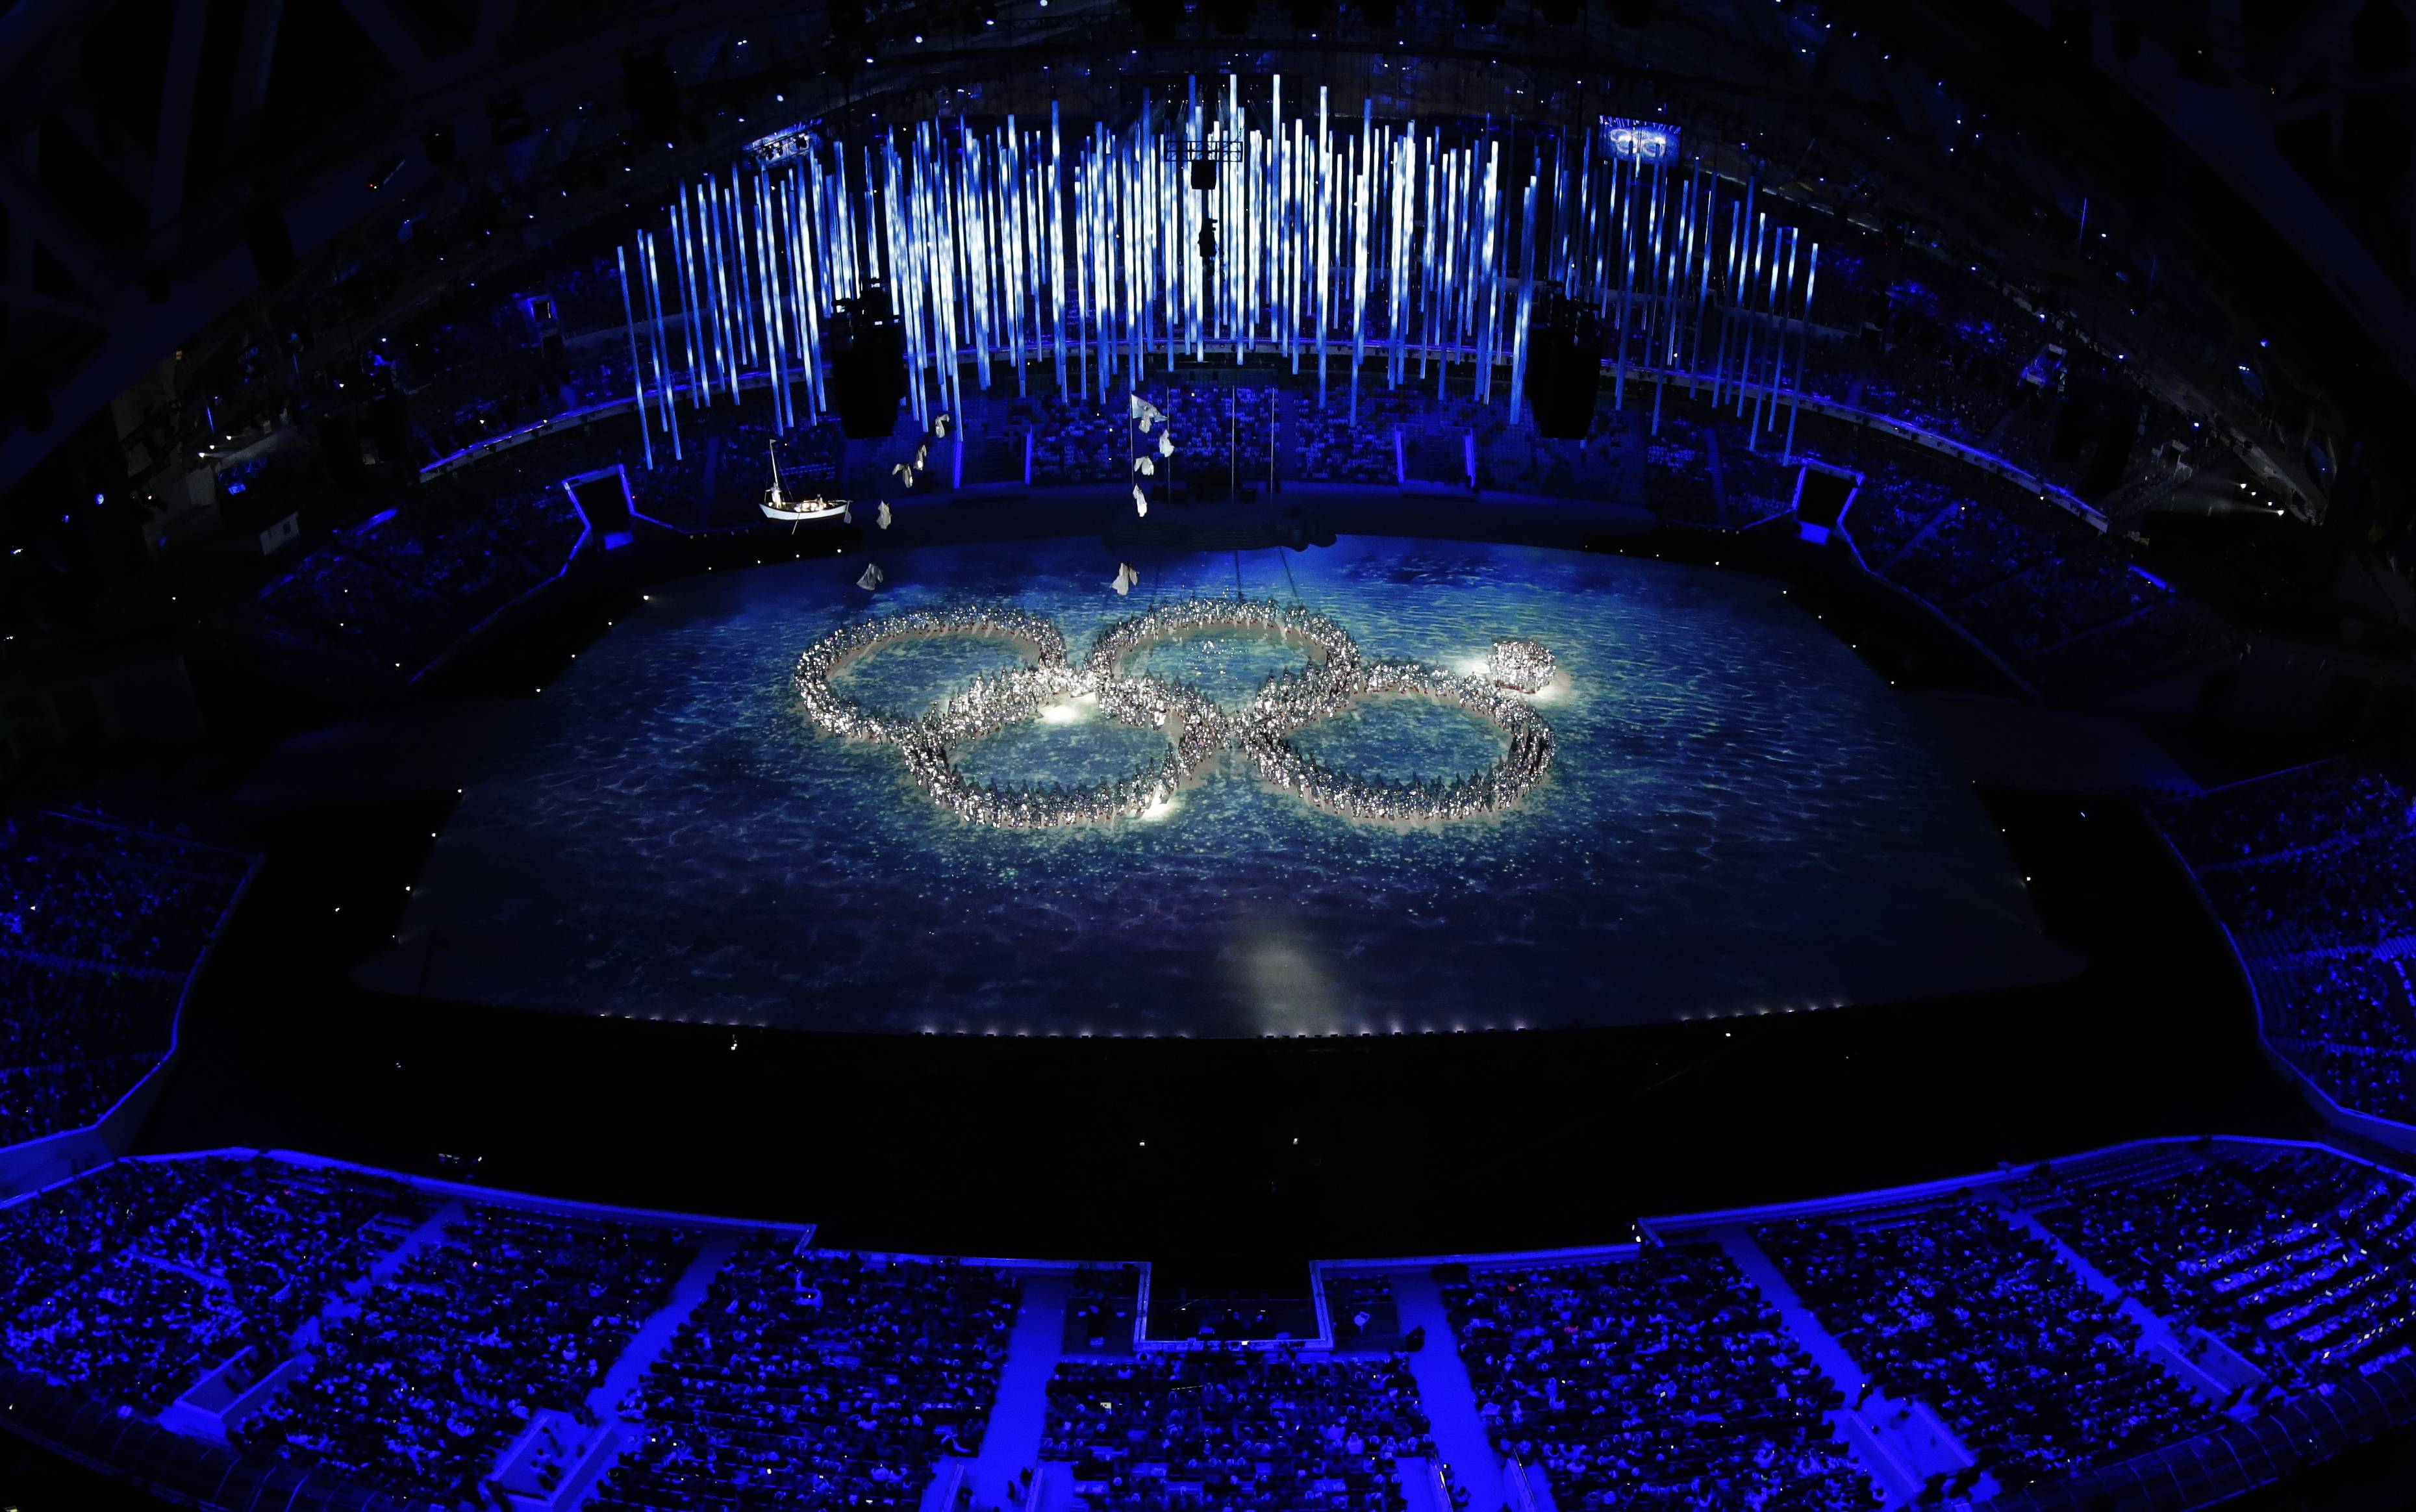 Performers recreate the ring that did not open during the opening ceremony during the closing ceremony of the 2014 Winter Olympics, Sunday, Feb. 23, 2014, in Sochi, Russia.